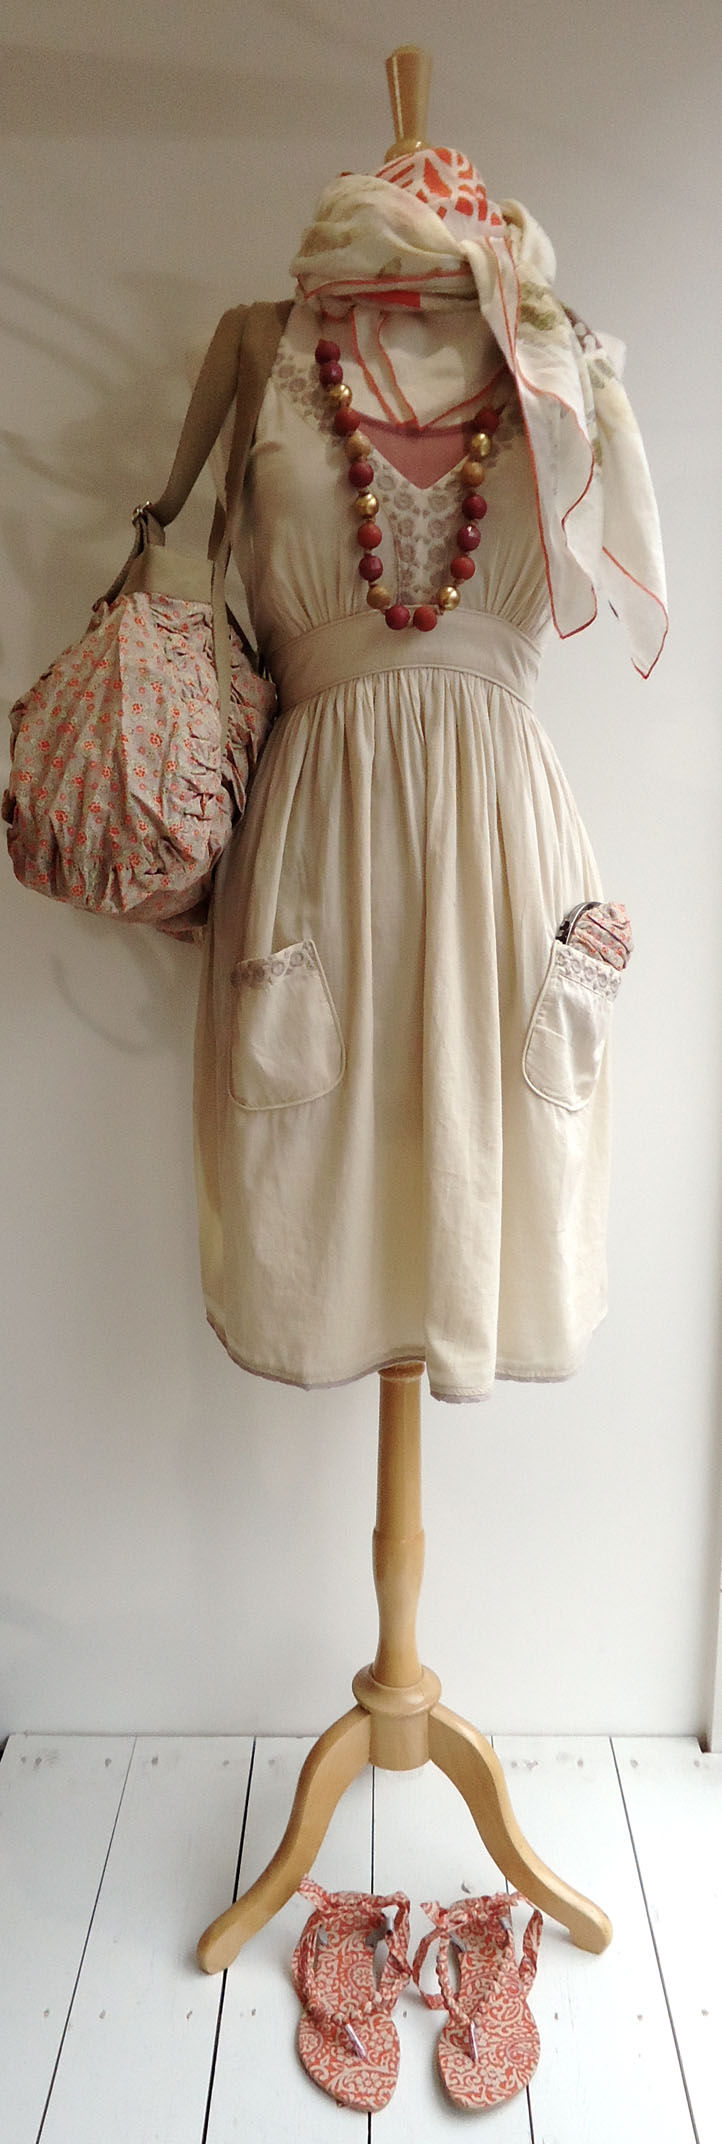 Vintage style clothes brighton  Noa Noa Brighton | Clothes | Pinterest | Brighton, Clothes and Boho